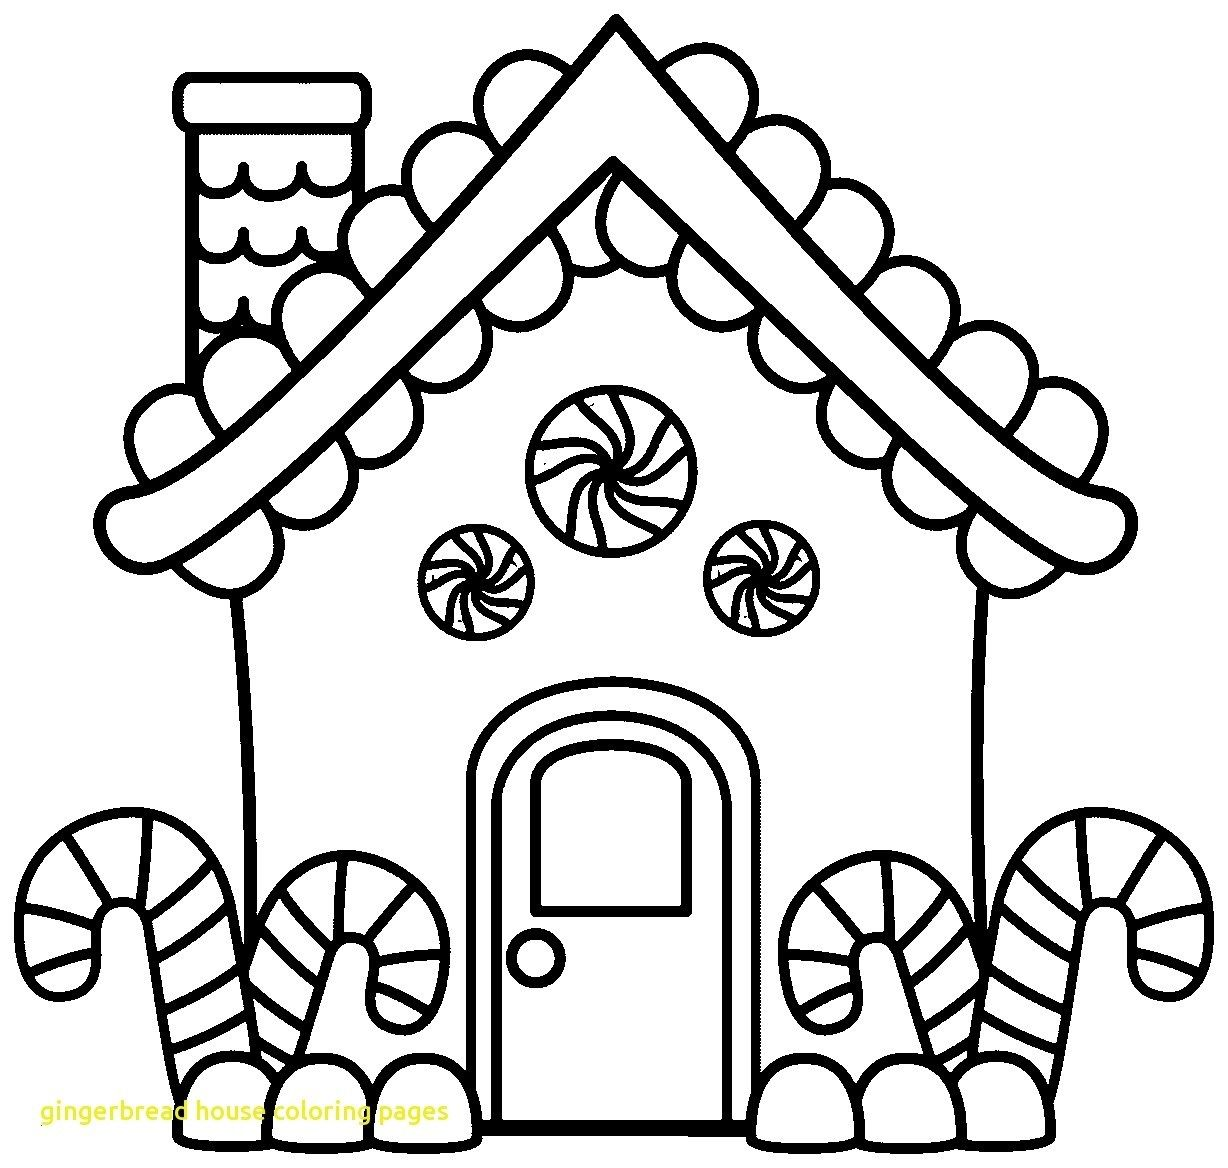 Christmas Coloring Sheets Gingerbread Man Wonderfull Coloring